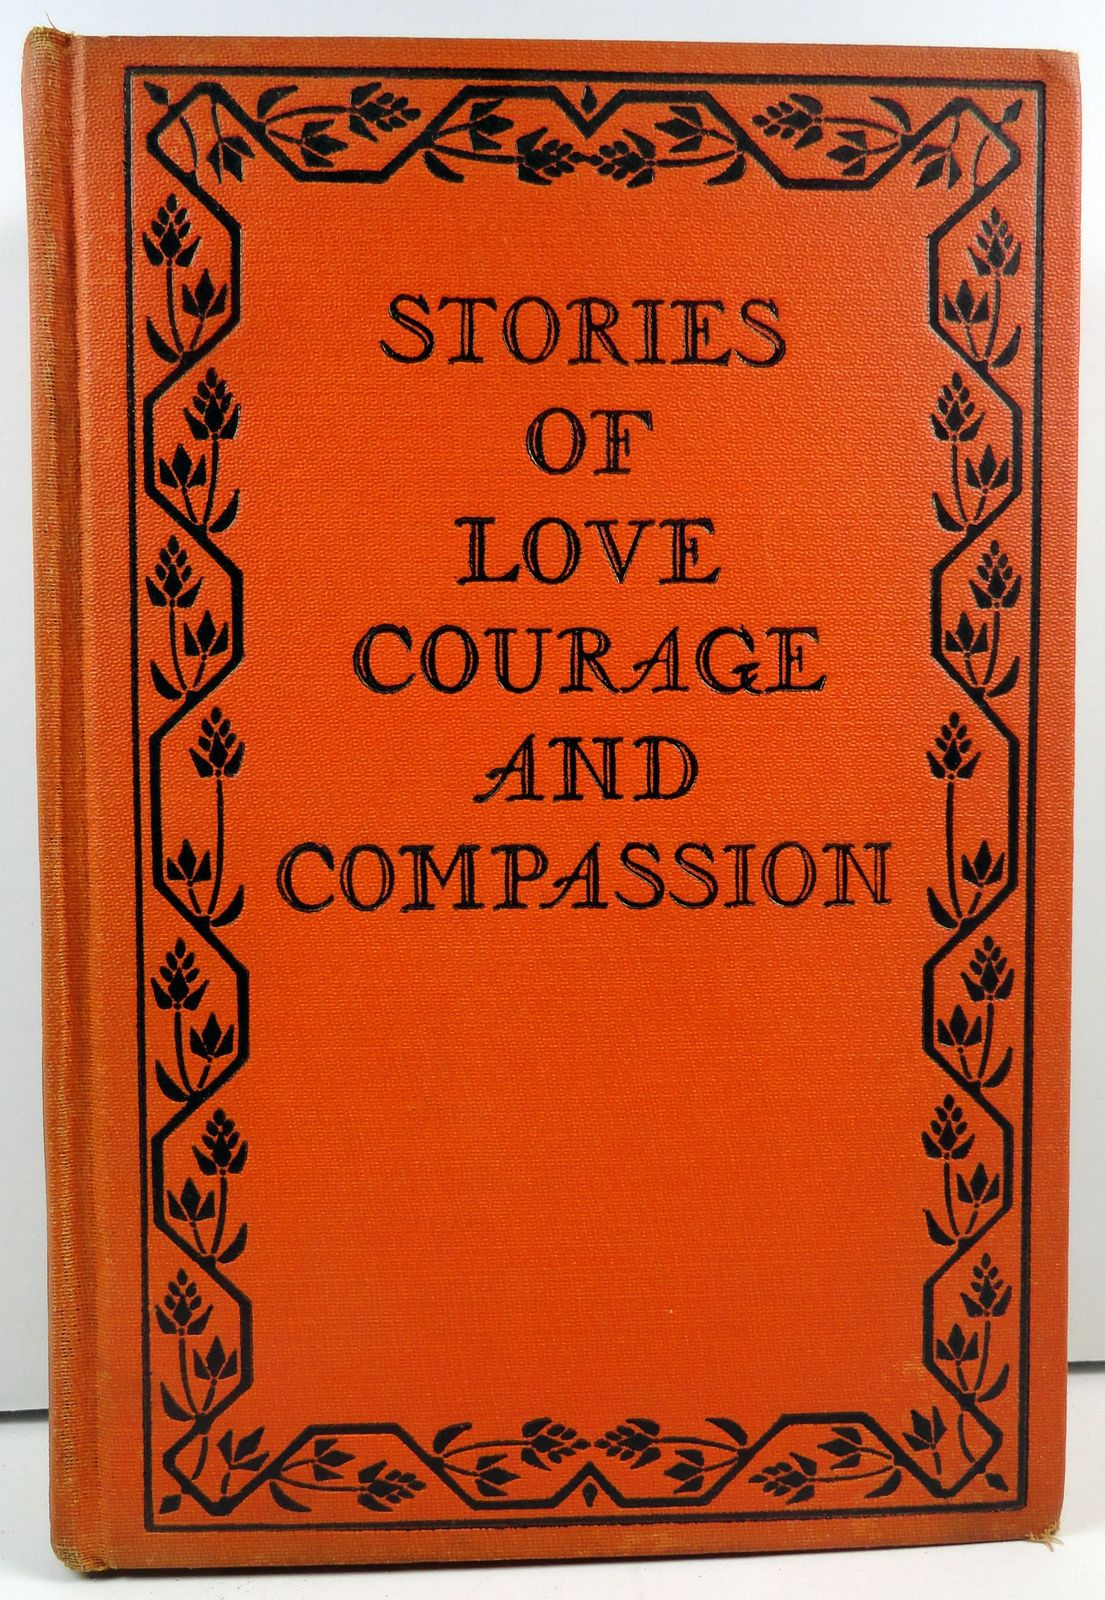 Stories of Love Courage and Compassion by Warwick Deeping